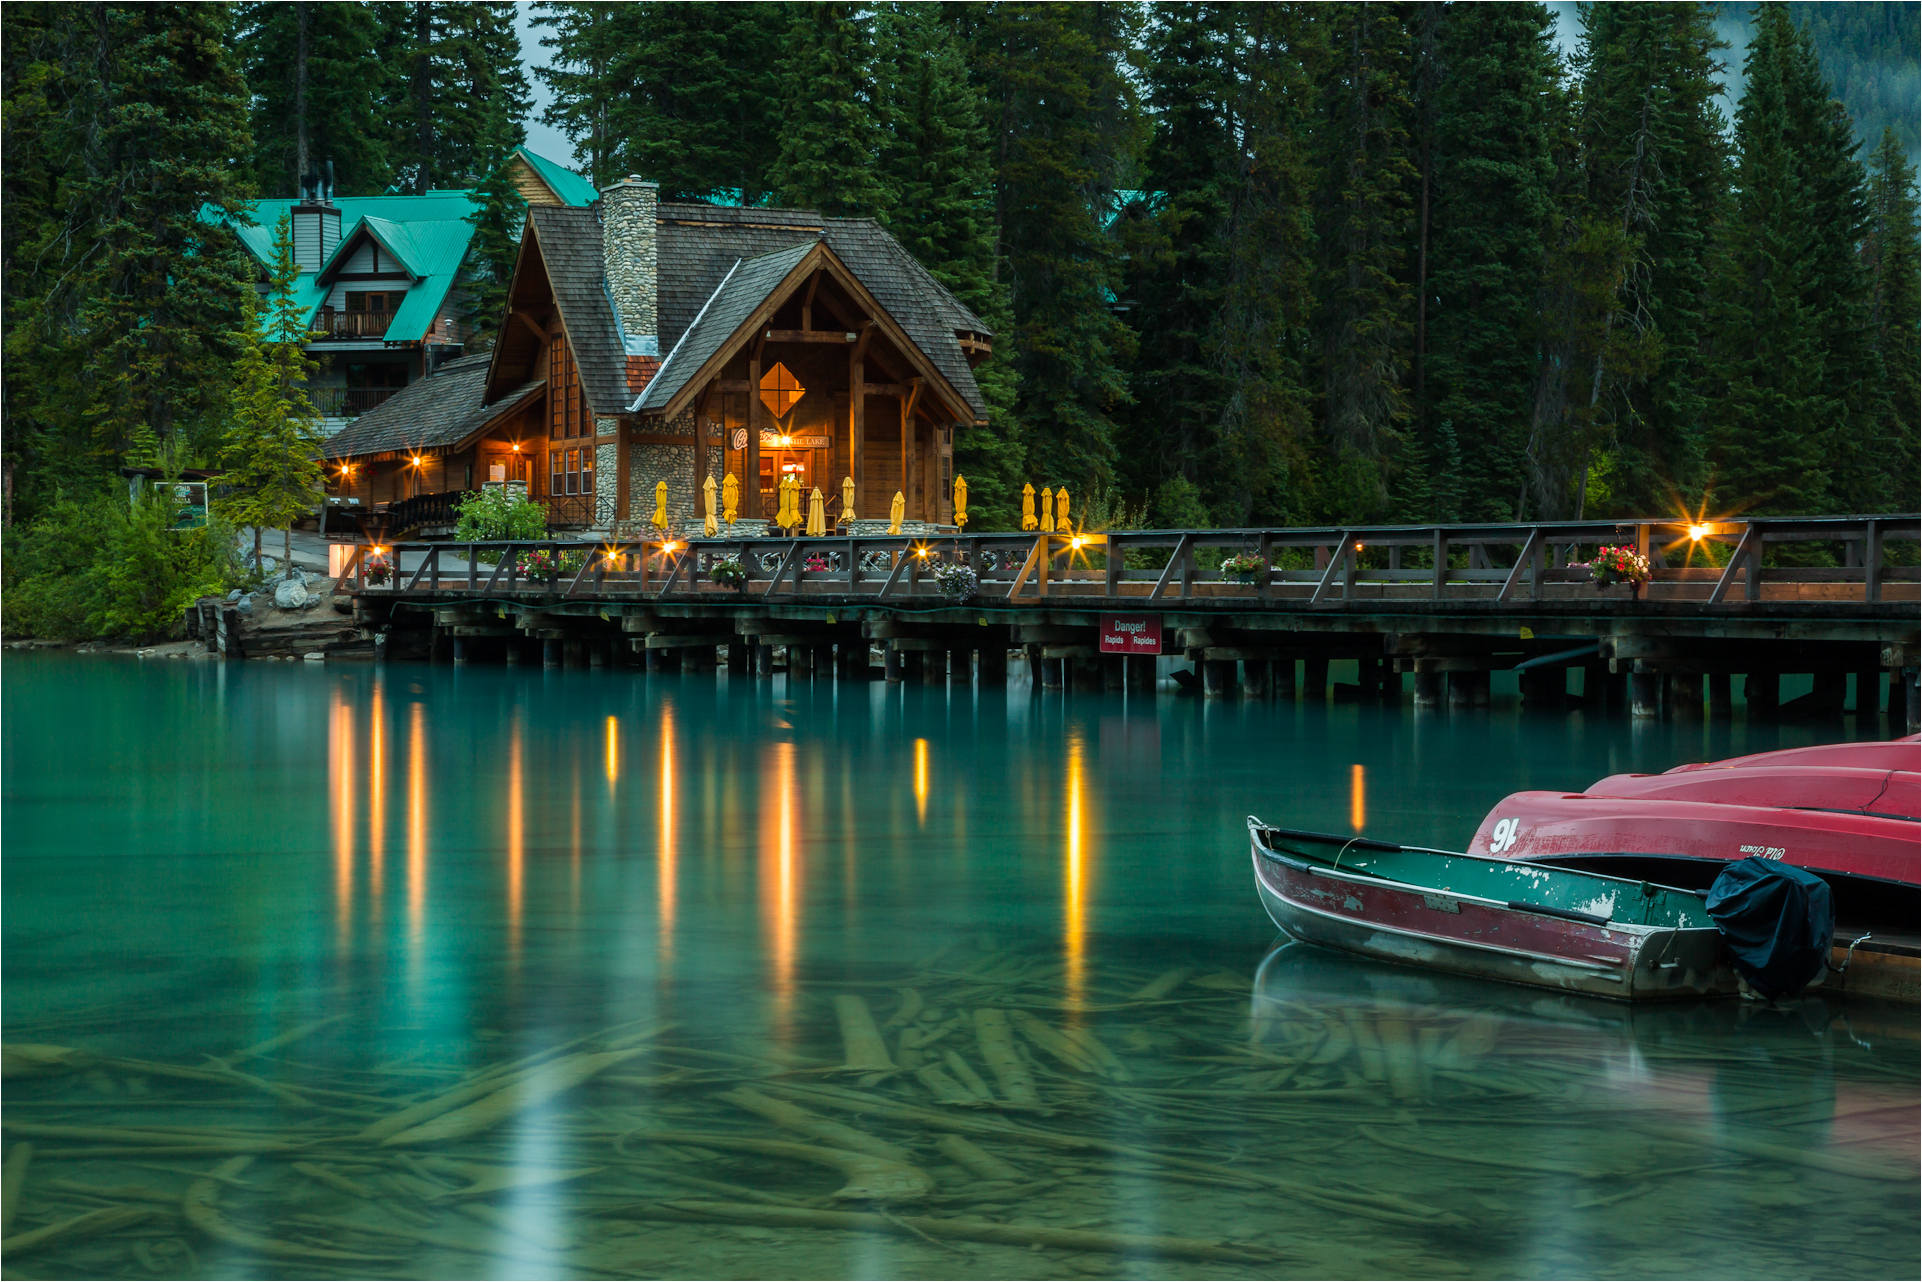 emerald-lake-c2a9-christopher-martin-7717